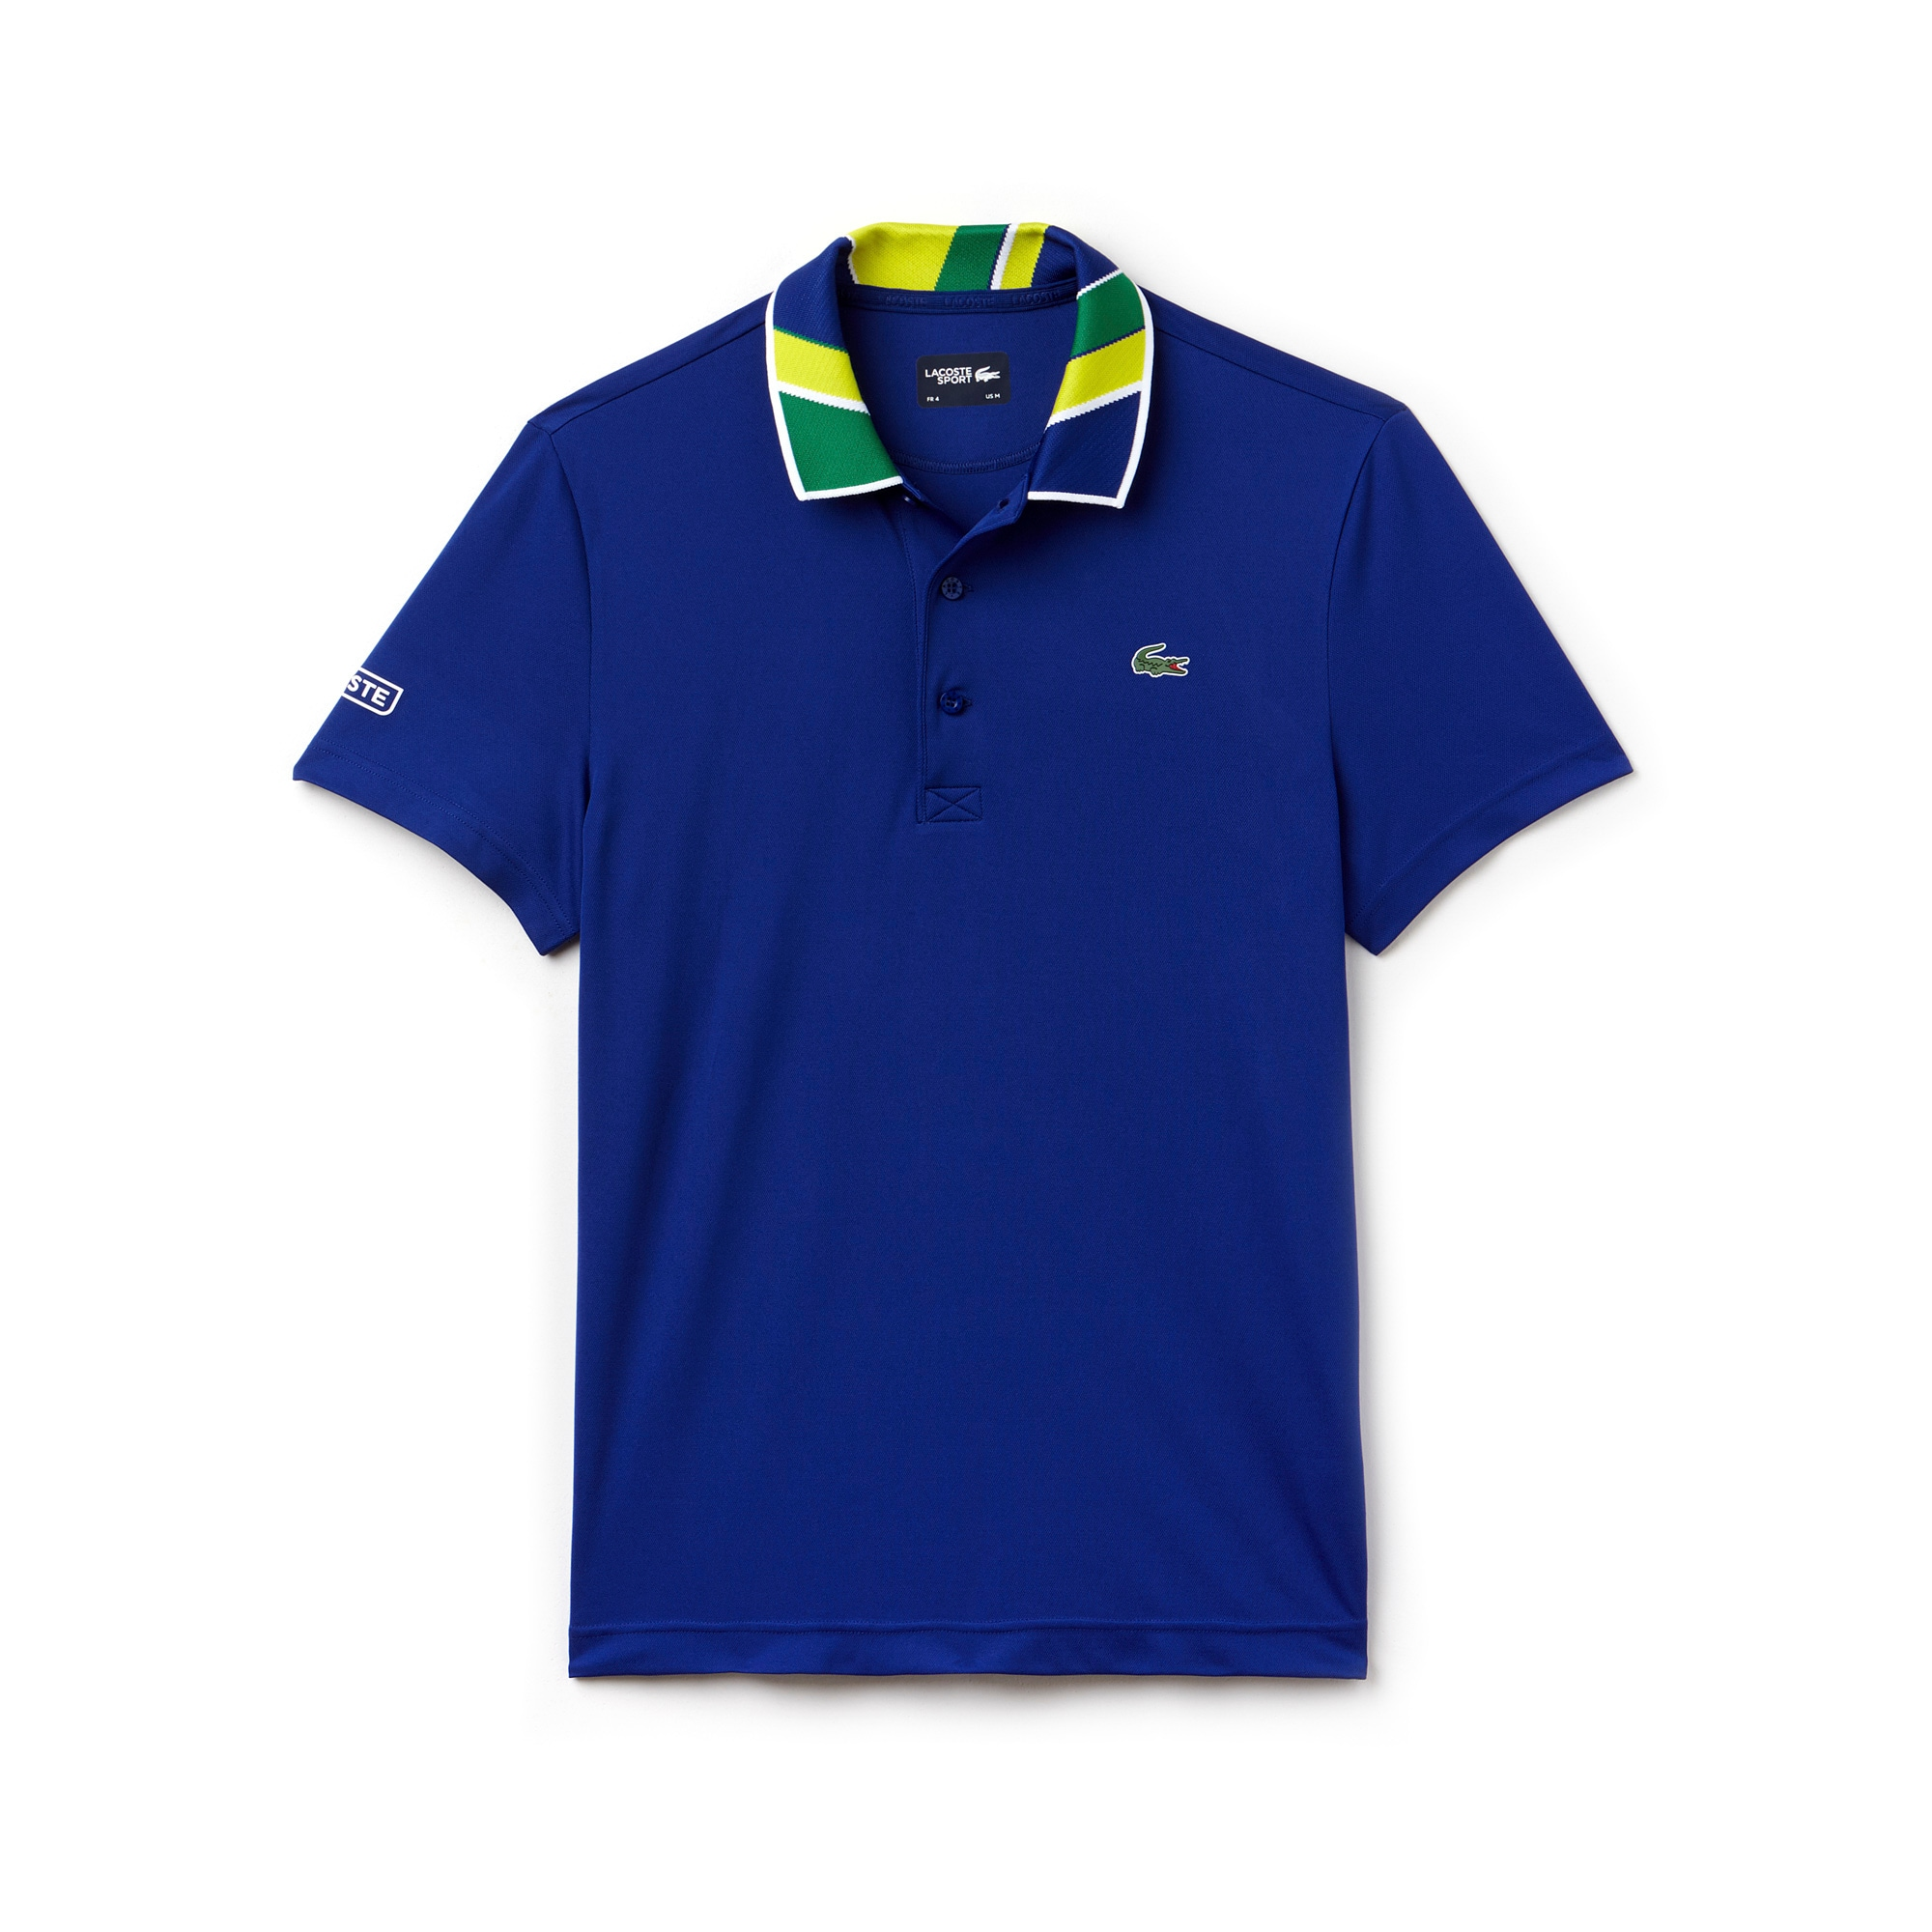 Men's SPORT Print Neck Technical Piqué Tennis Polo